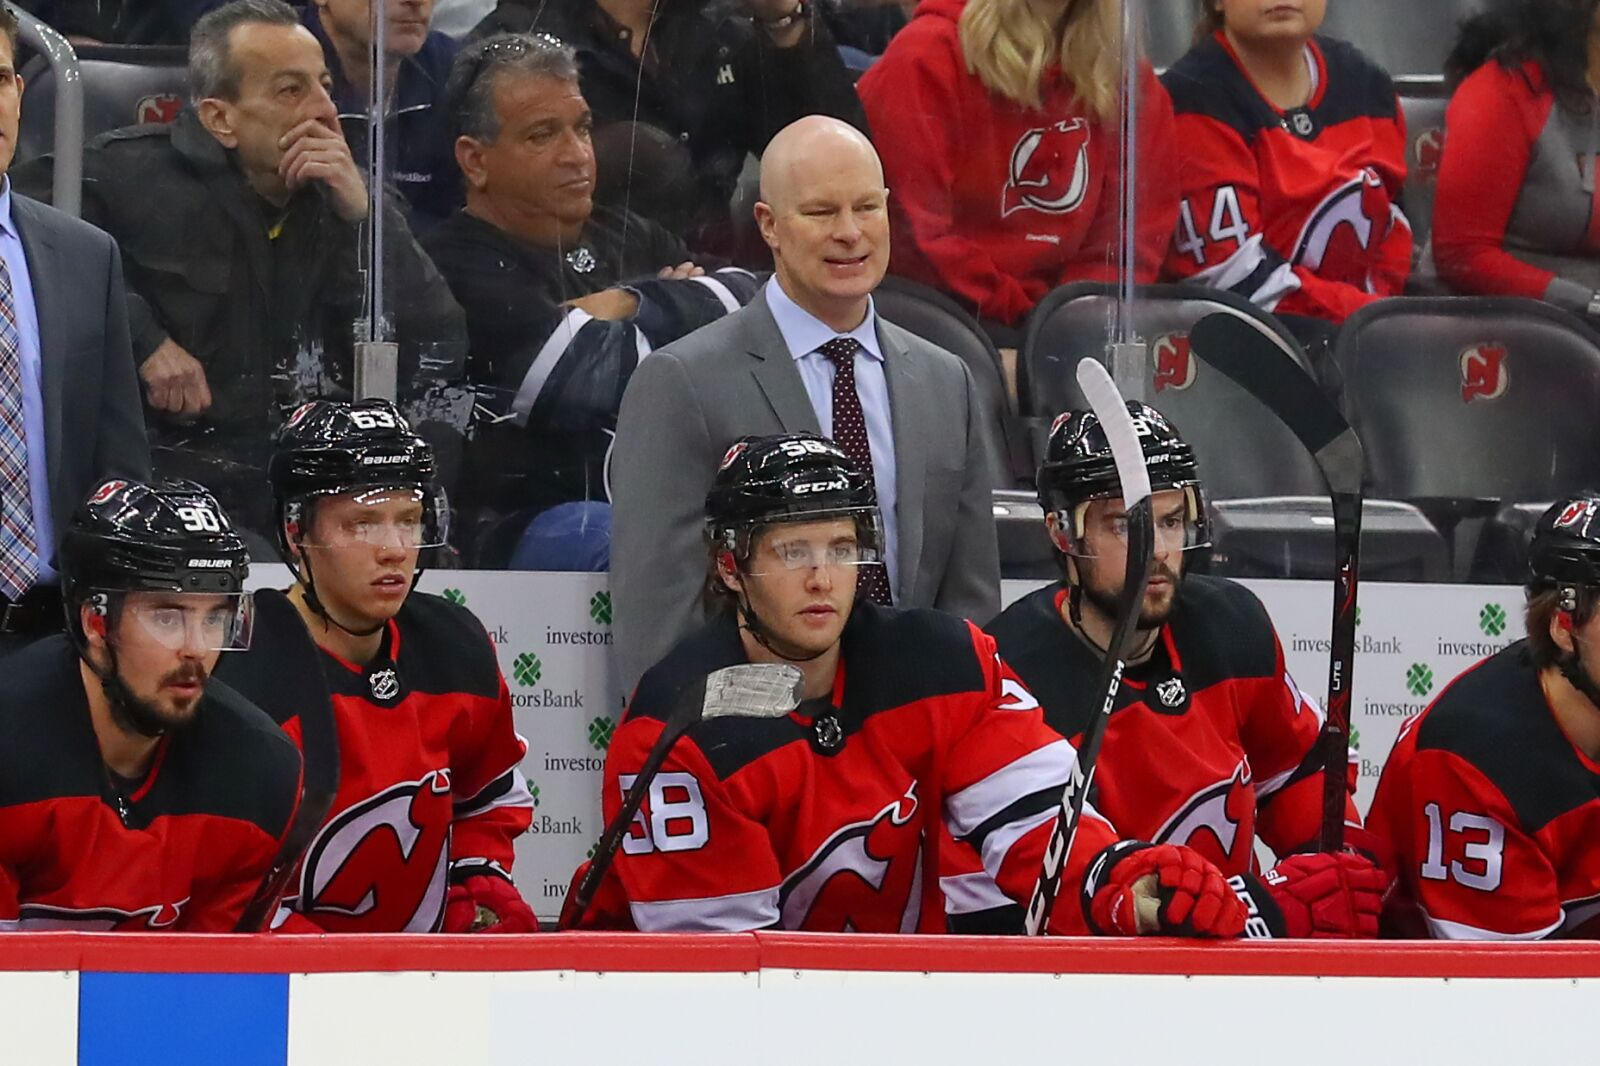 New Jersey Devils: Looking At Ray Shero's Past To Determine John Hynes Future